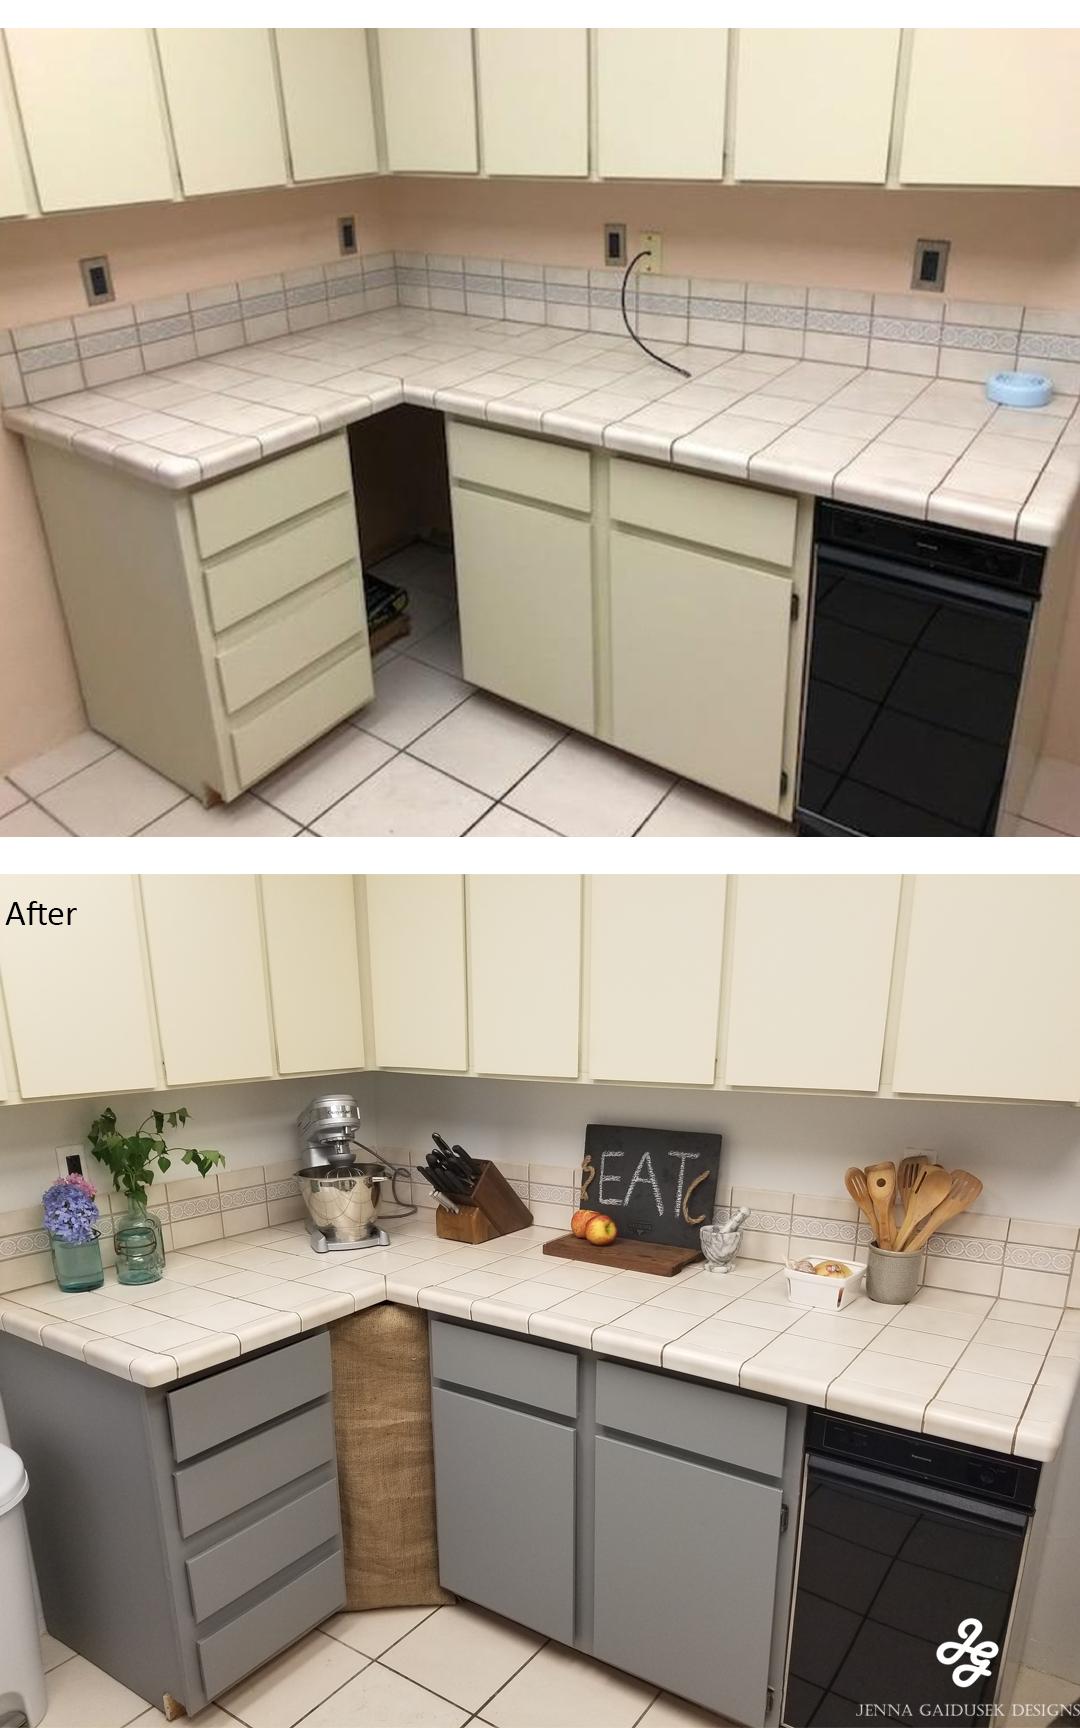 Pin On Apartment Living For Students